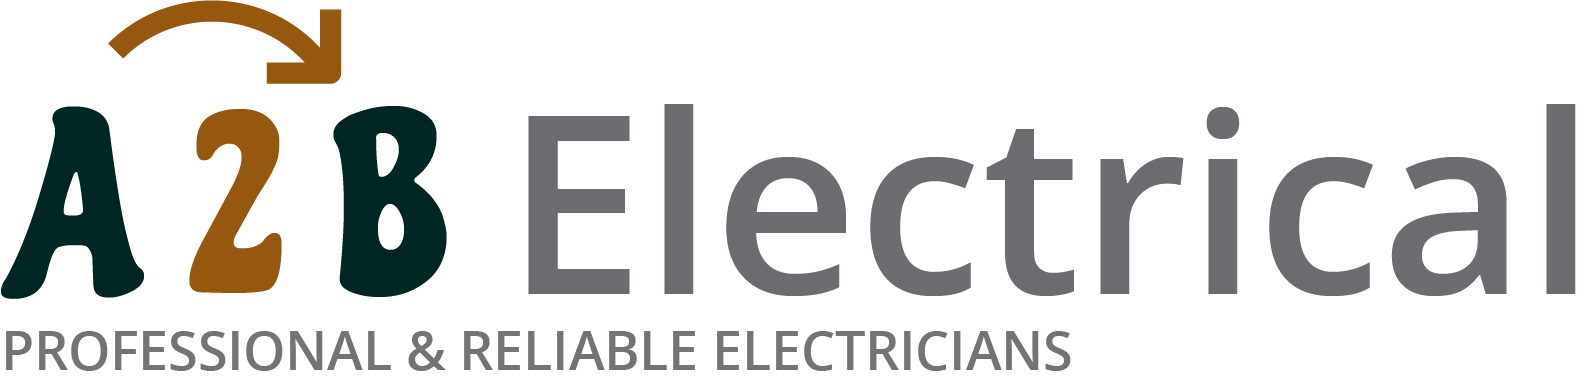 If you have electrical wiring problems in Willesden, we can provide an electrician to have a look for you.